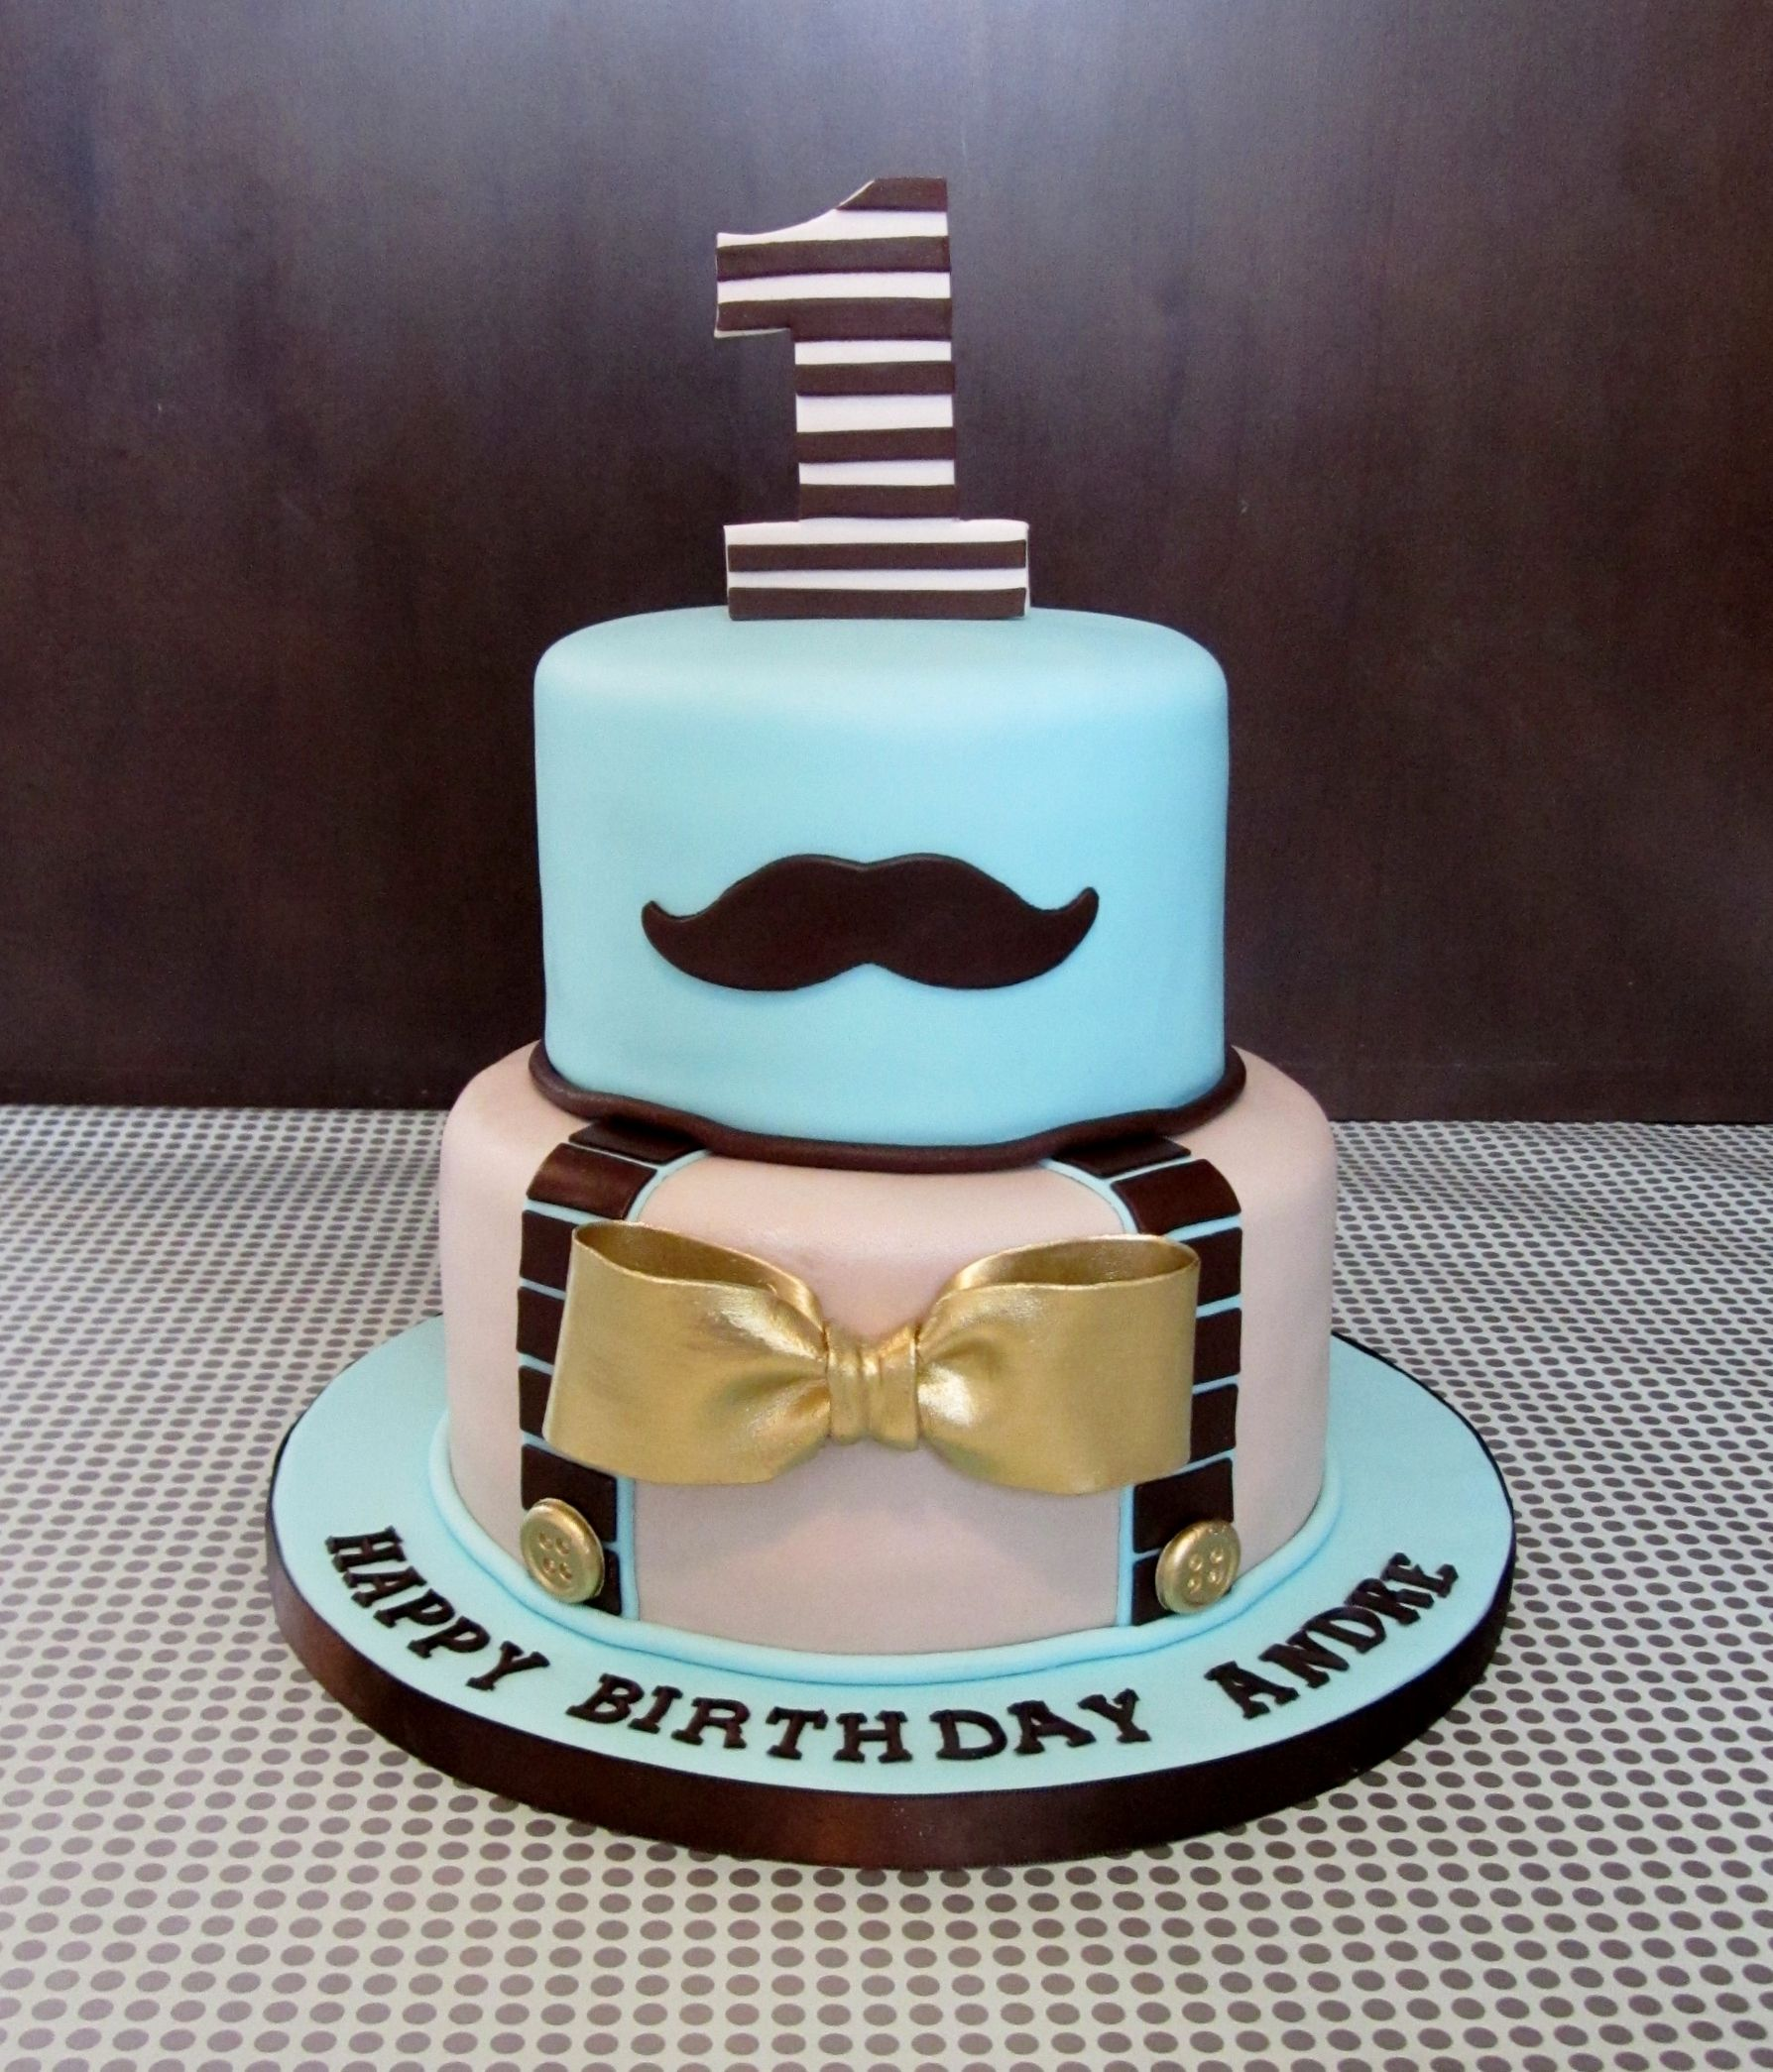 Astonishing Little Man With Images Birthday Cakes For Men Little Man Funny Birthday Cards Online Fluifree Goldxyz